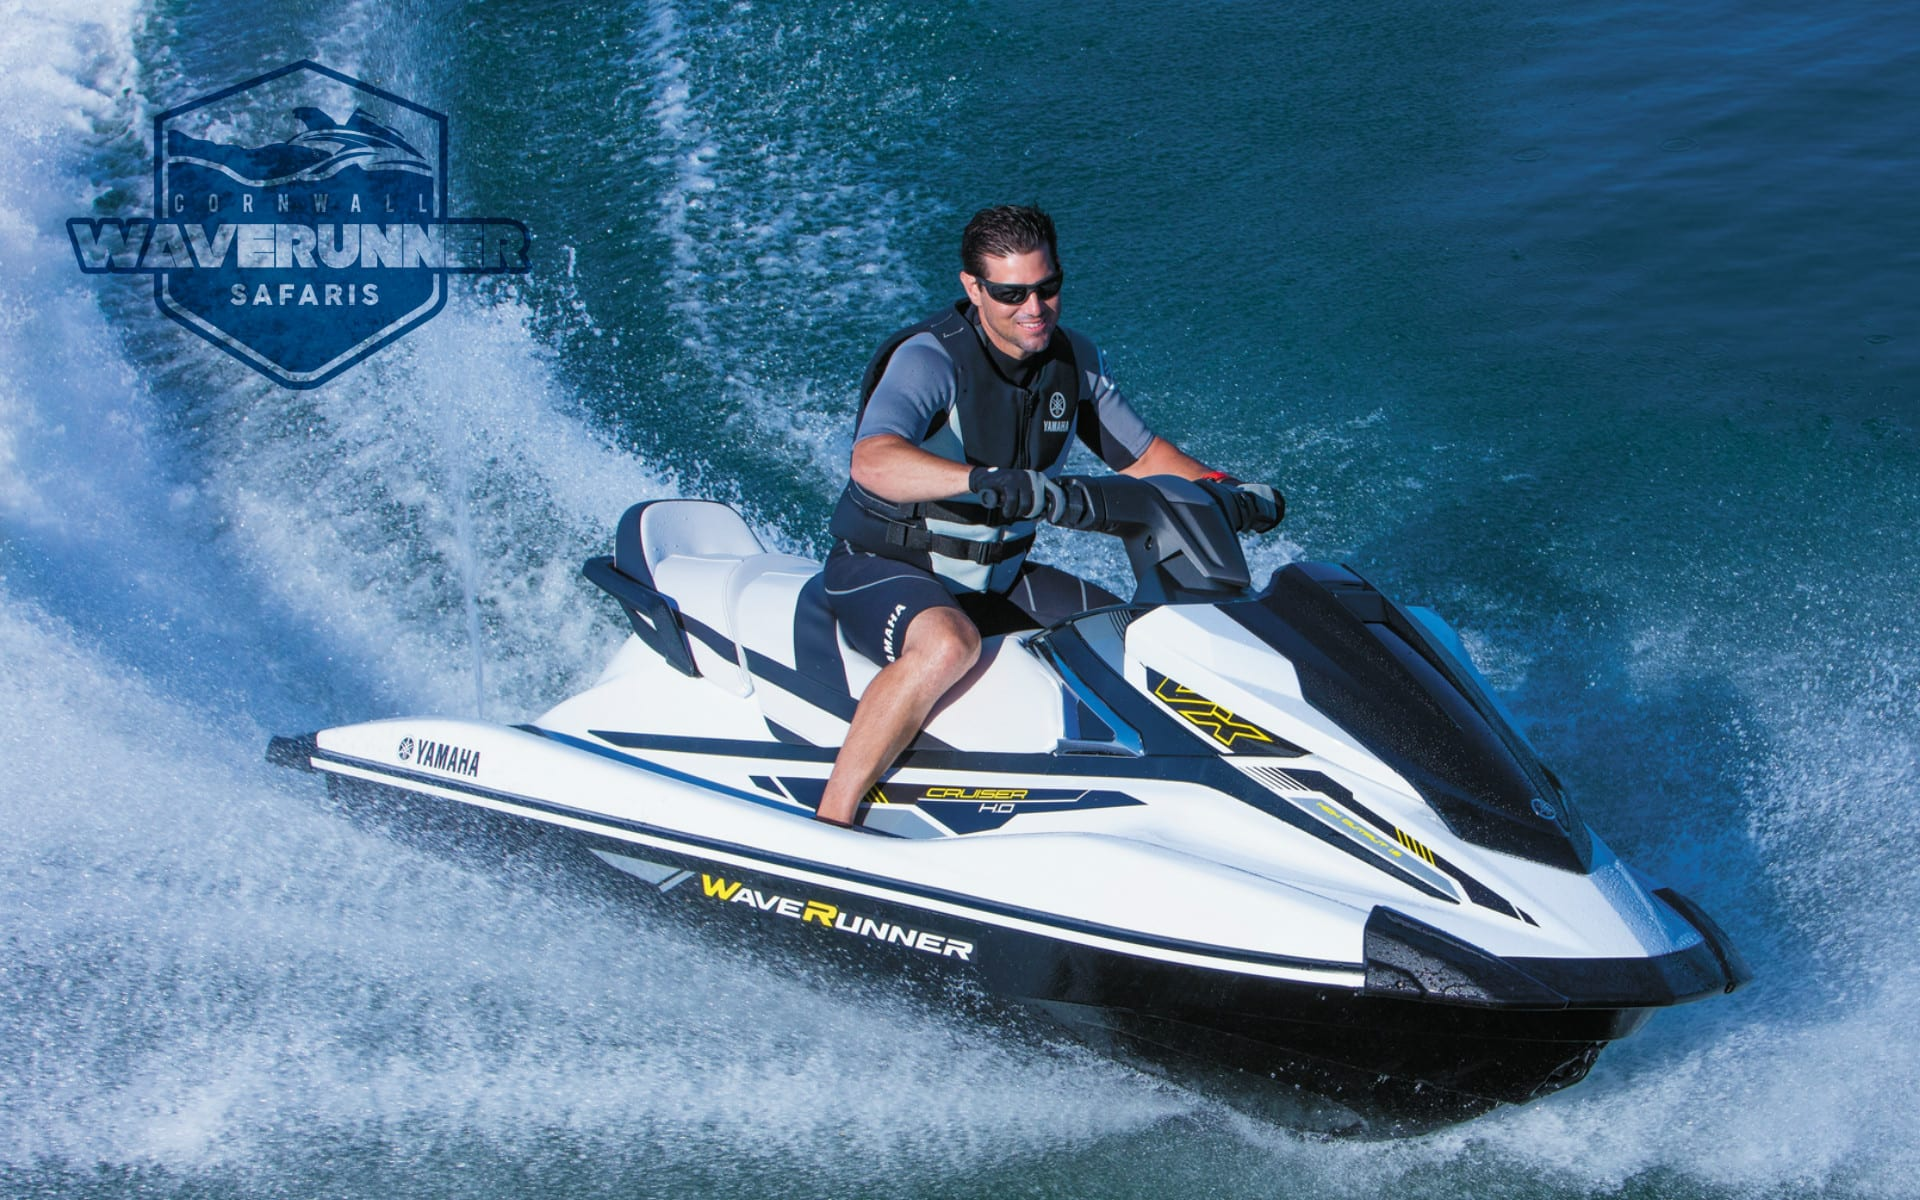 new yamaha waverunner vx hocruiser for sale